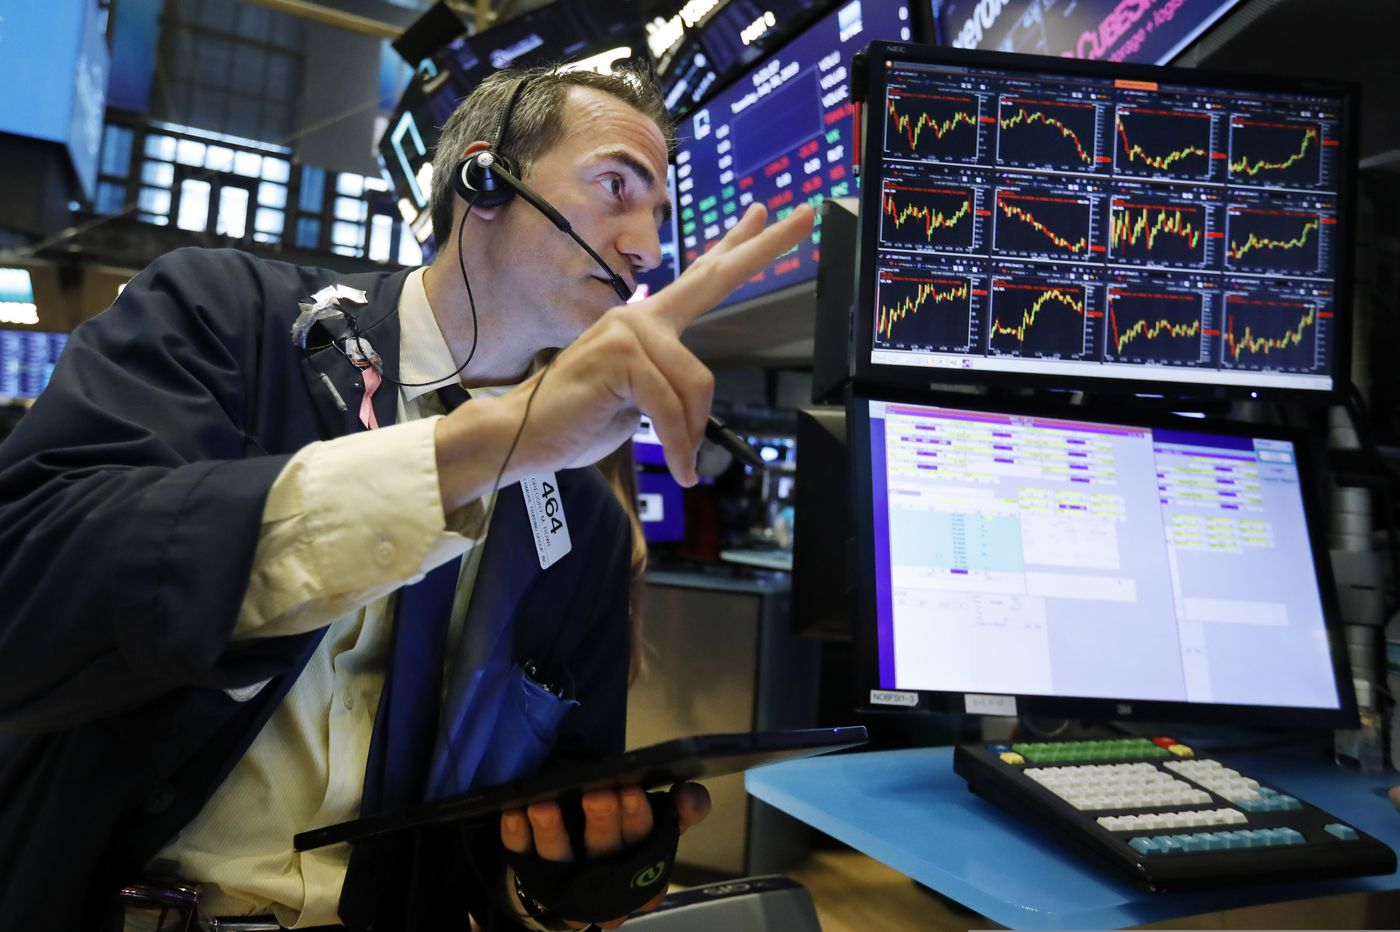 Stocks tank as another recession warning surfaces